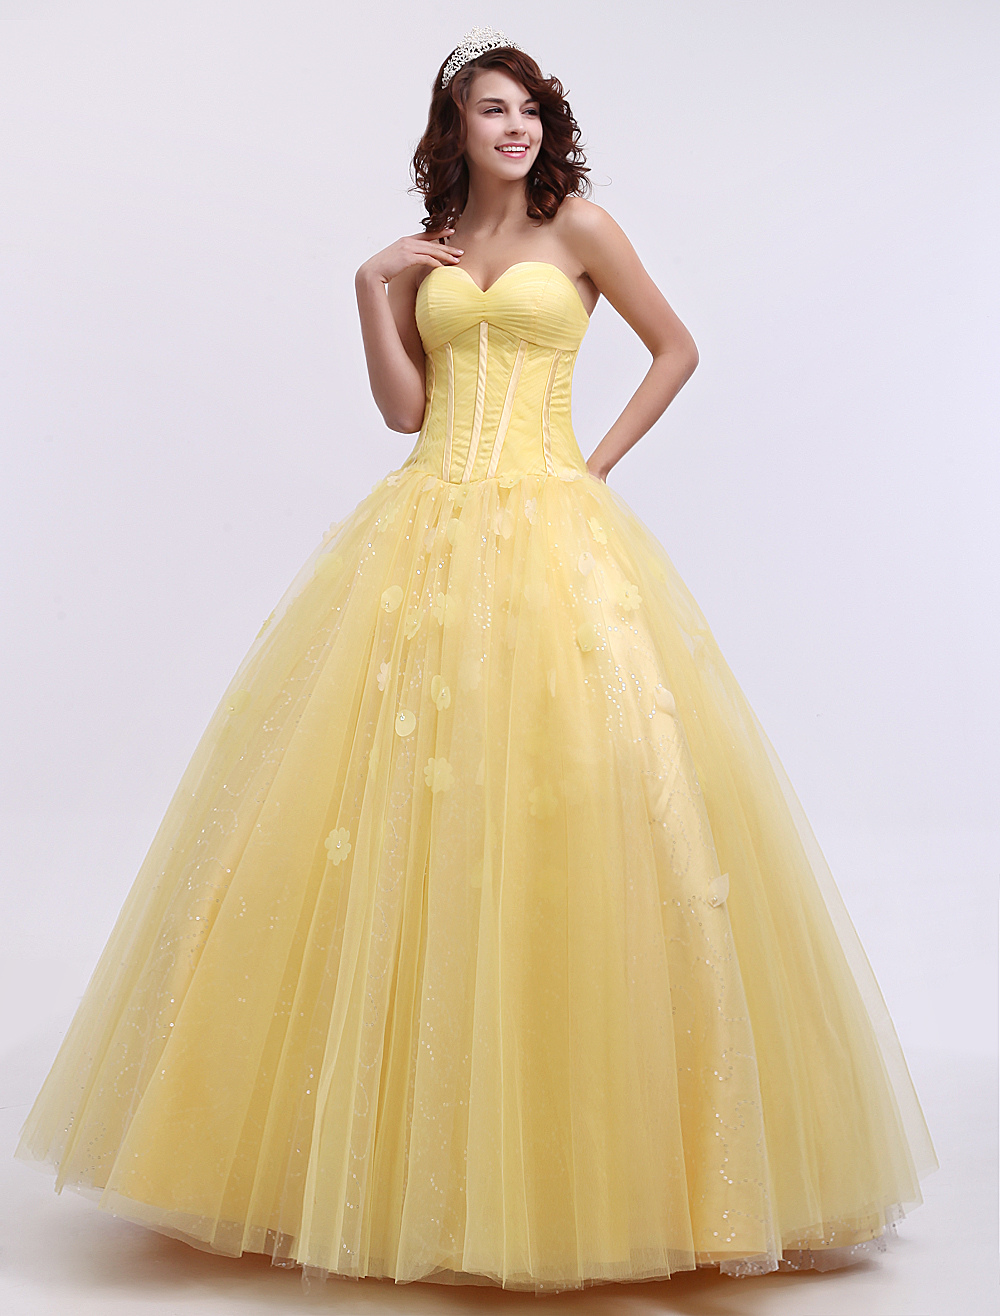 Sweet Ball Gown Strapless Daffodil Tulle Quinceanera Dress Milanoo